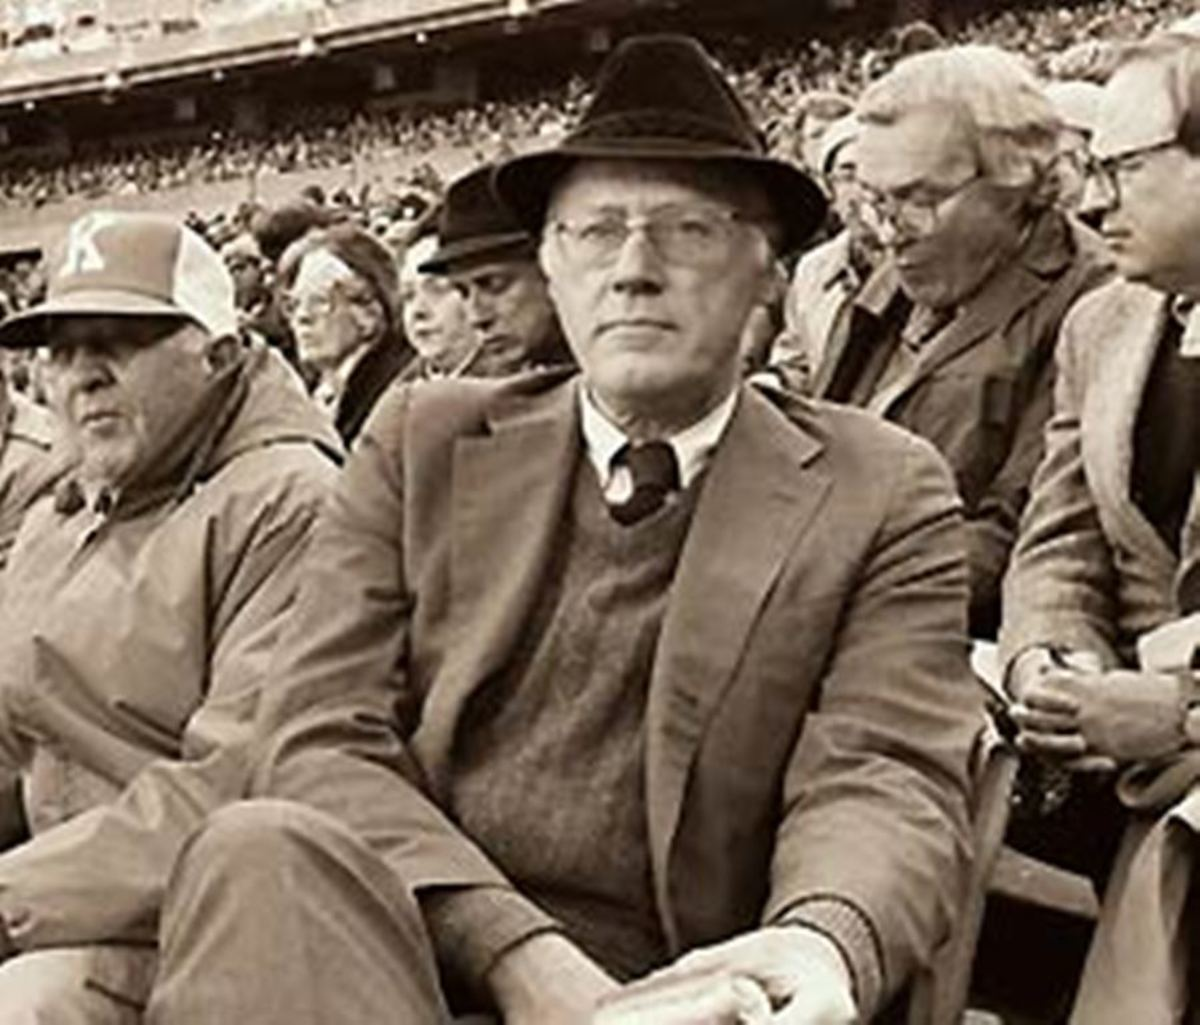 MLB Commissioner Bowie Kuhn. He faced enormous challenges during his tenure, from racial and labor strife to nervous TV executives.